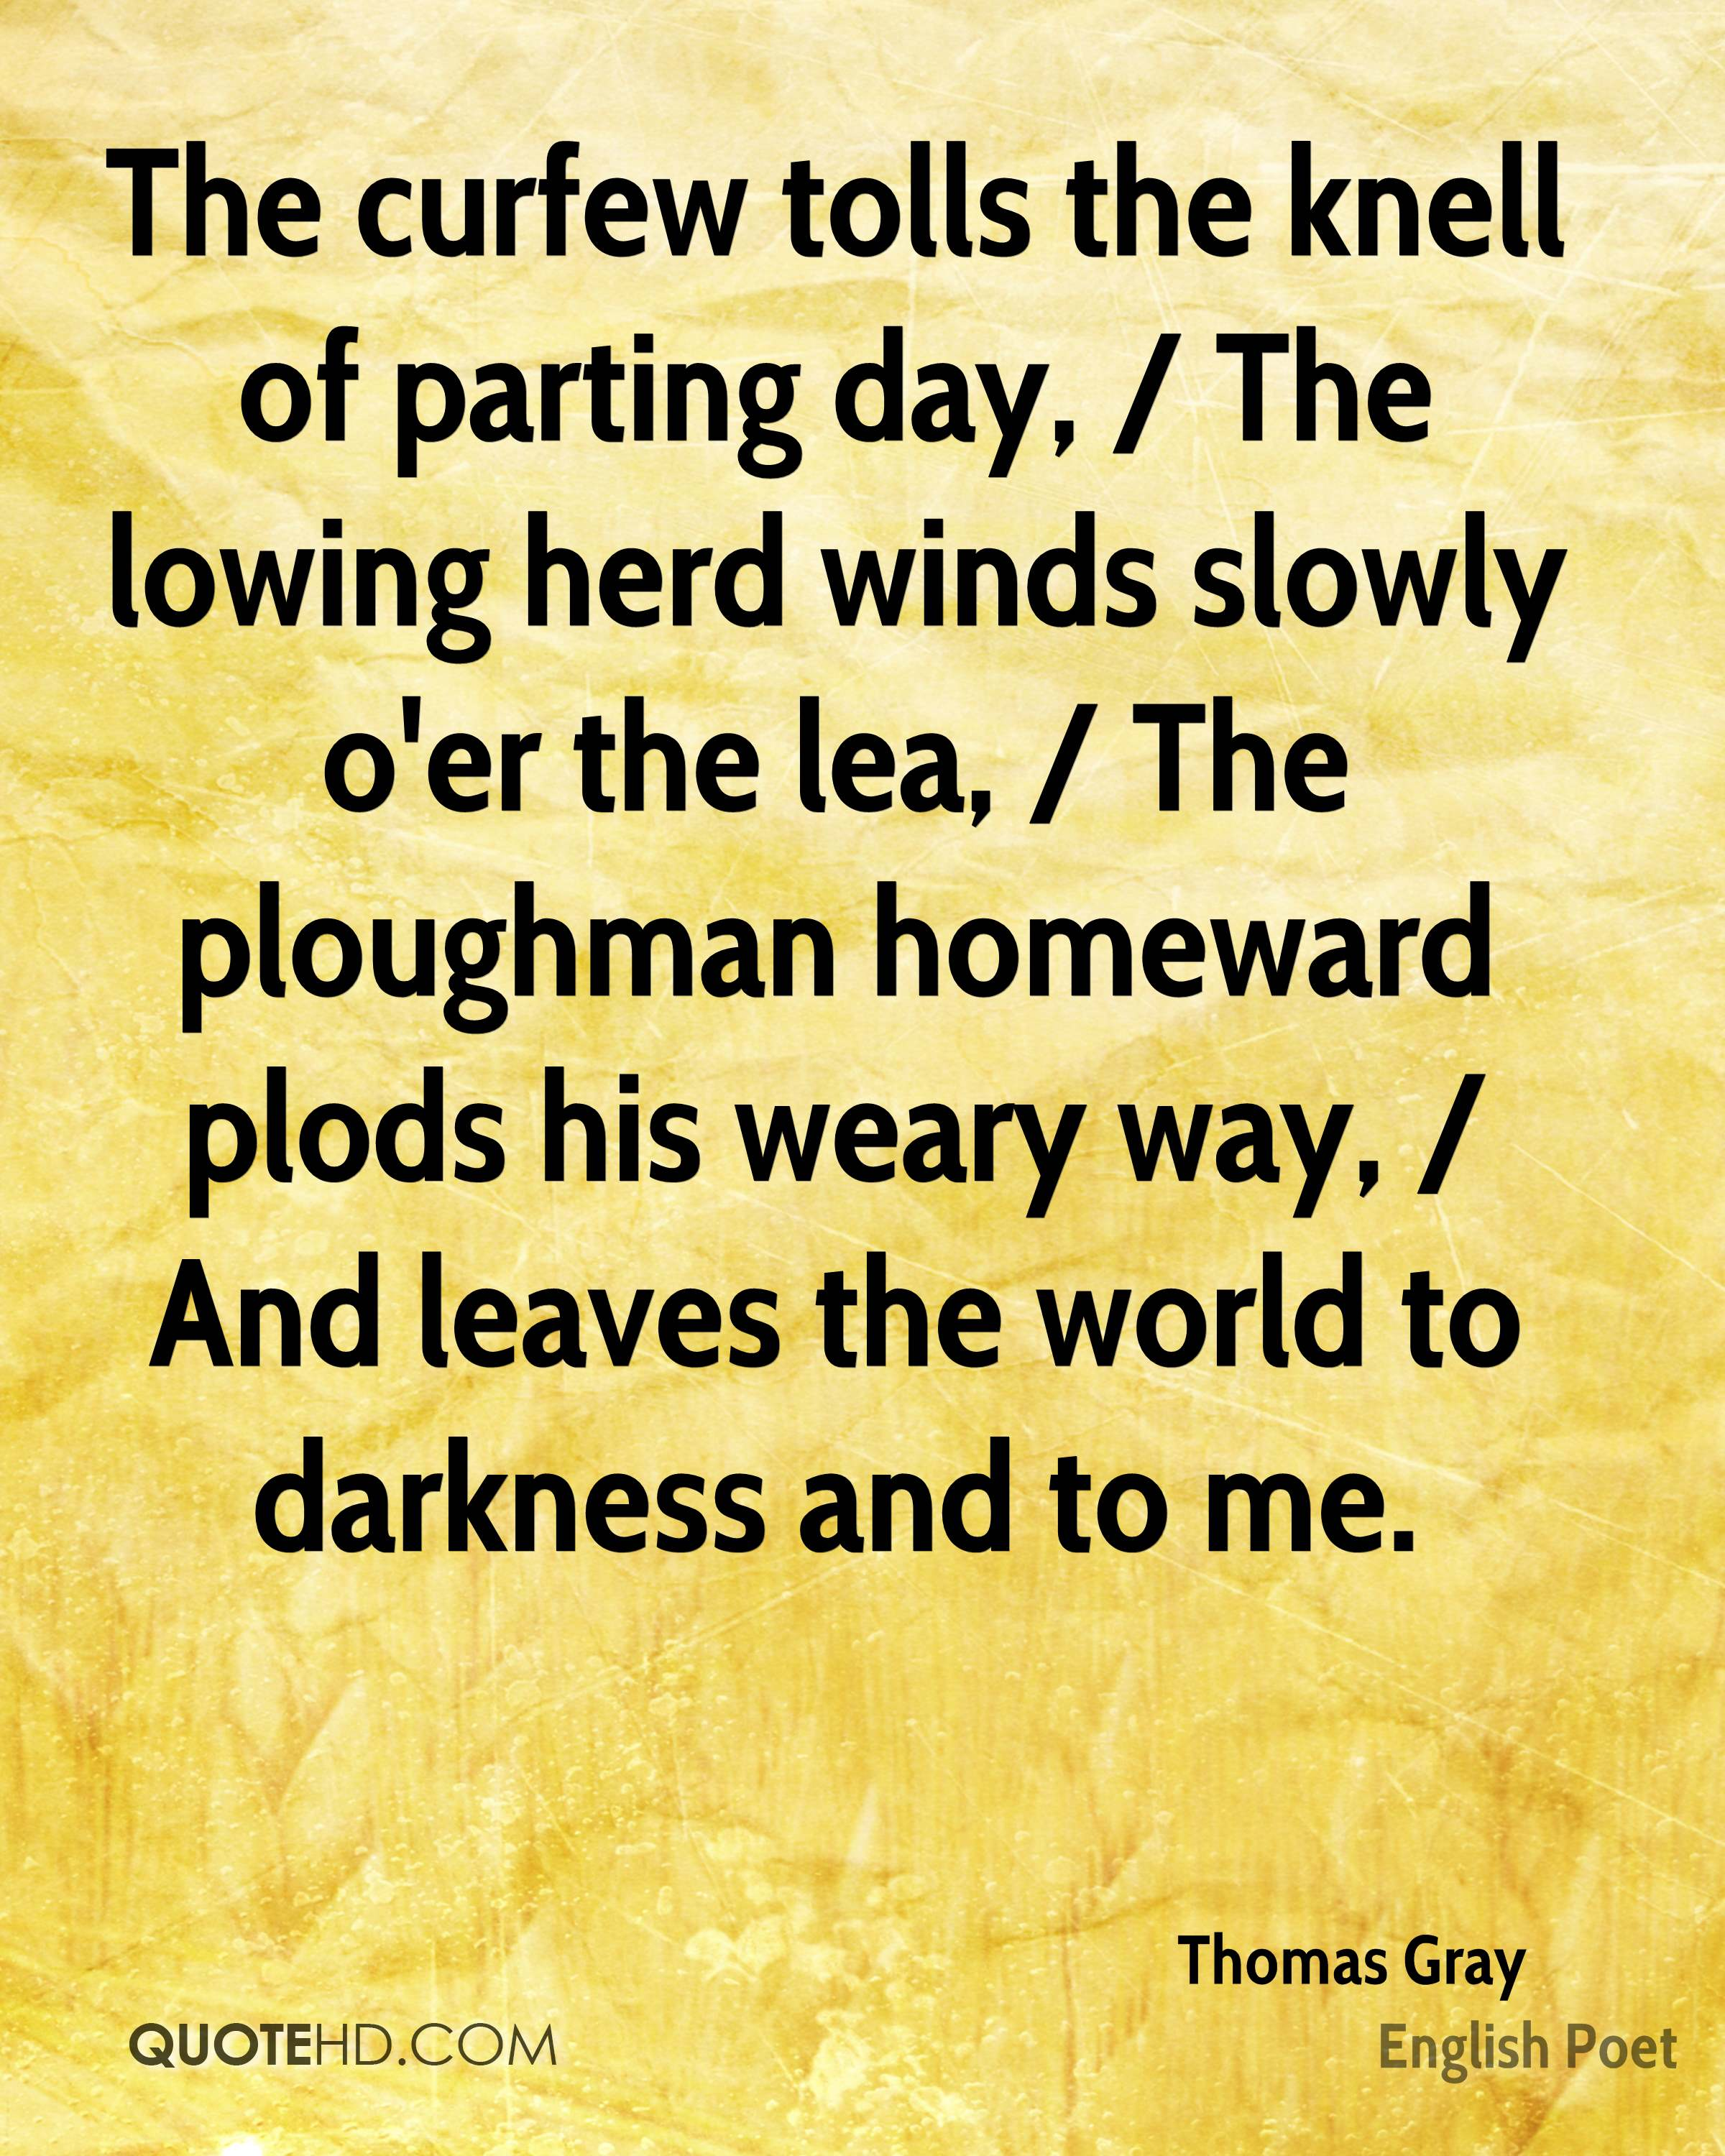 The curfew tolls the knell of parting day, / The lowing herd winds slowly o'er the lea, / The ploughman homeward plods his weary way, / And leaves the world to darkness and to me.